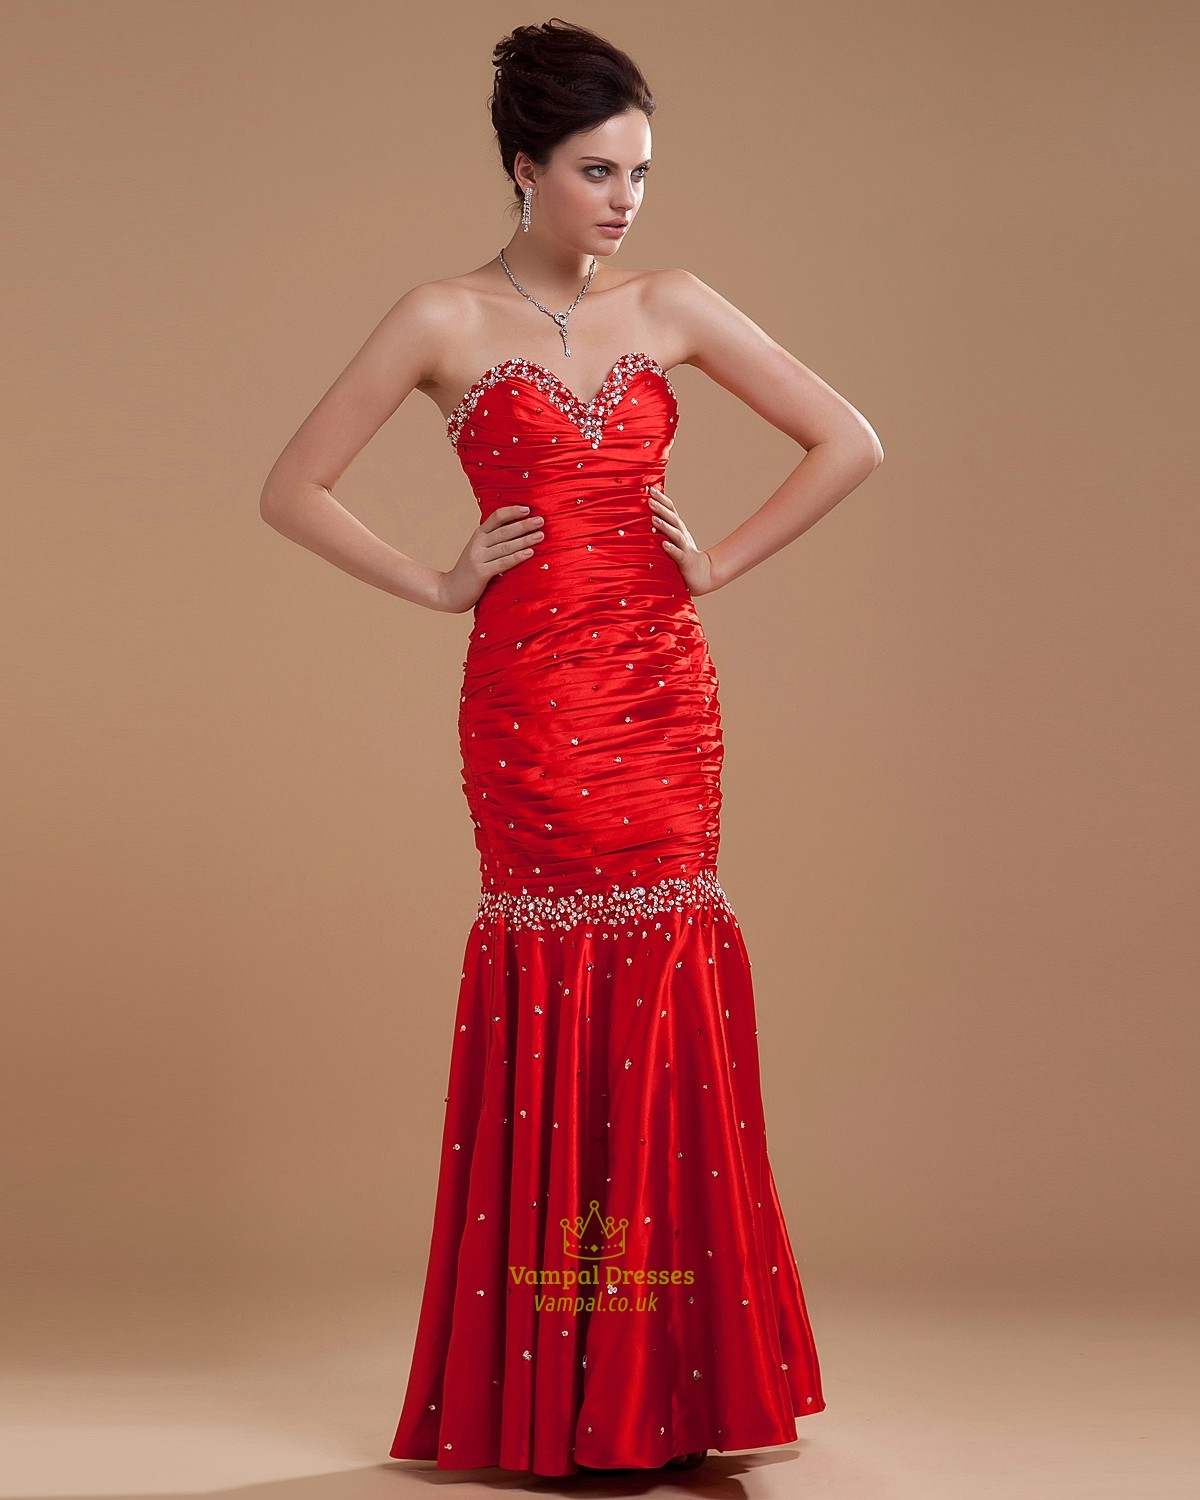 Red Mermaid Prom Dresses 2016,Red Prom Dresses 2016